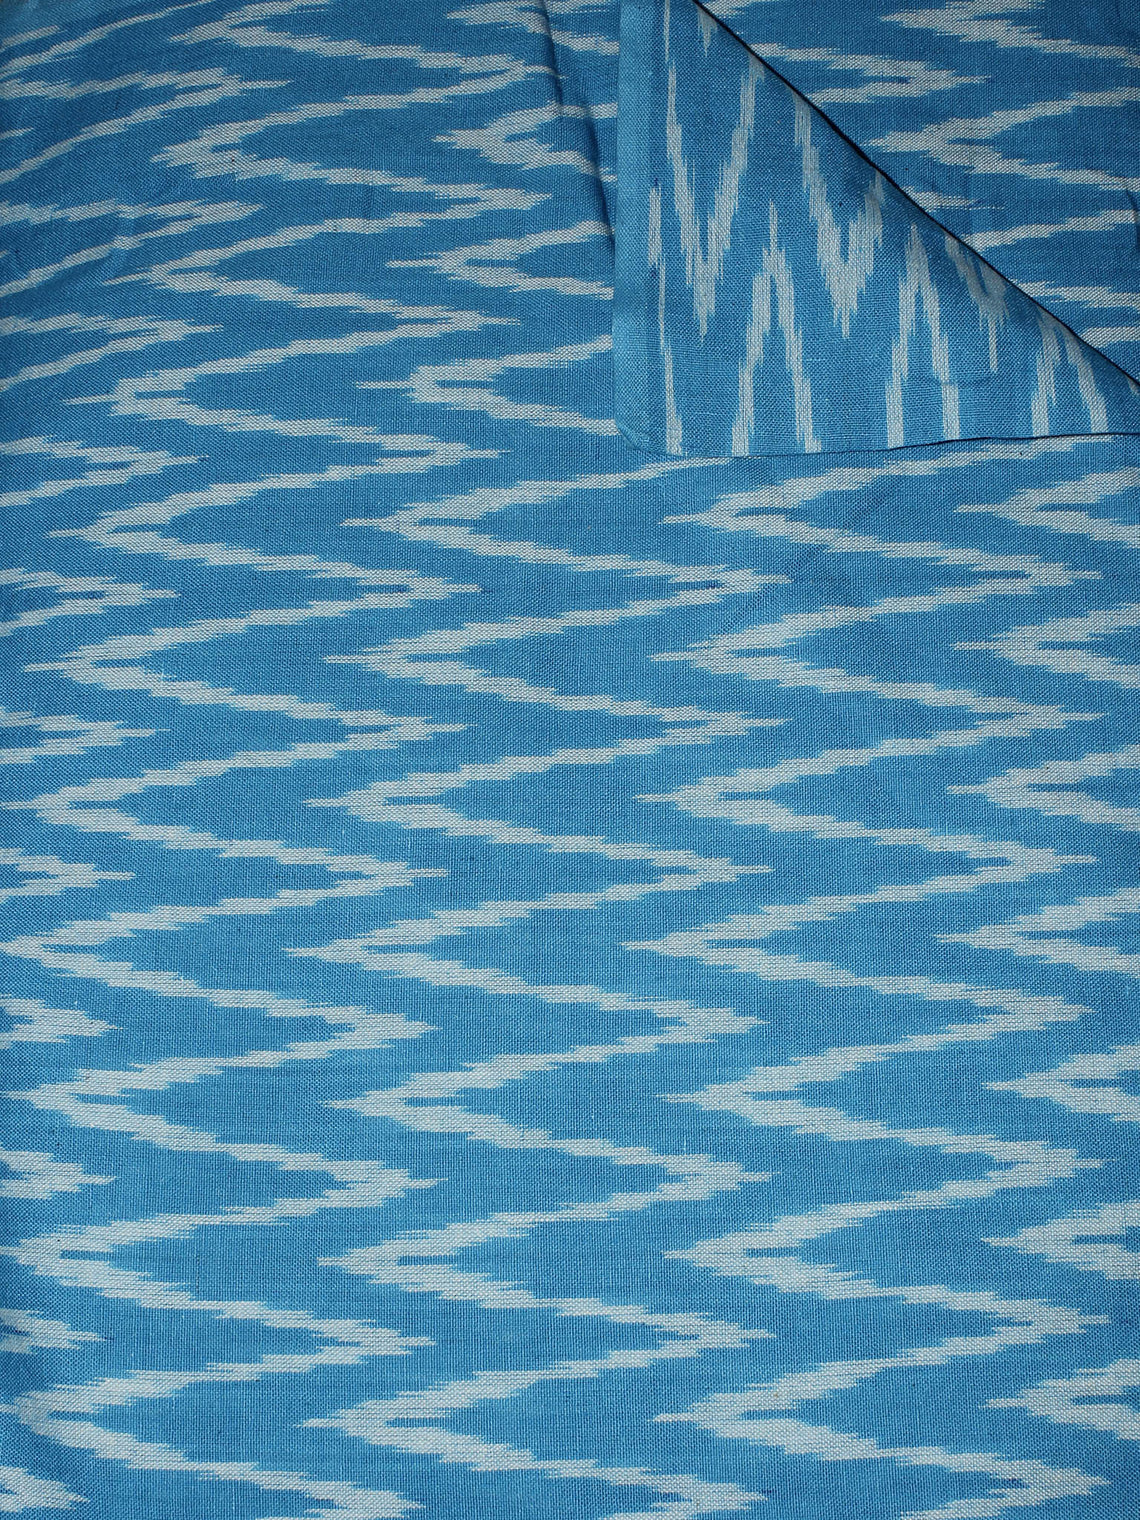 Azure Blue White Pochampally Hand Weaved Ikat Fabric Per Meter - F0916672